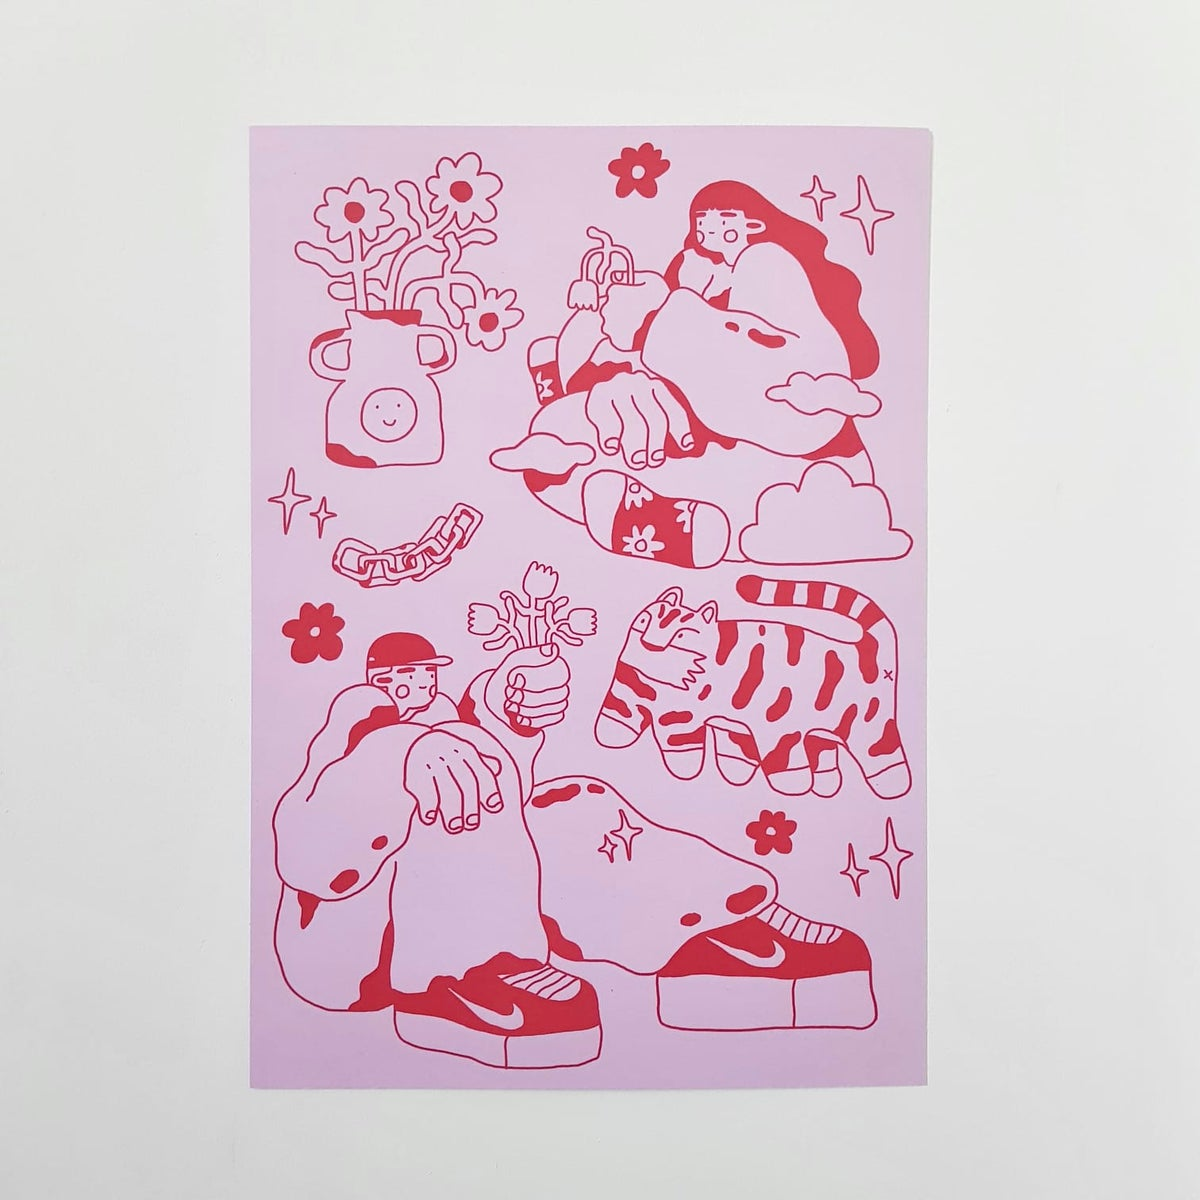 Dream (pink and red) - A4 print